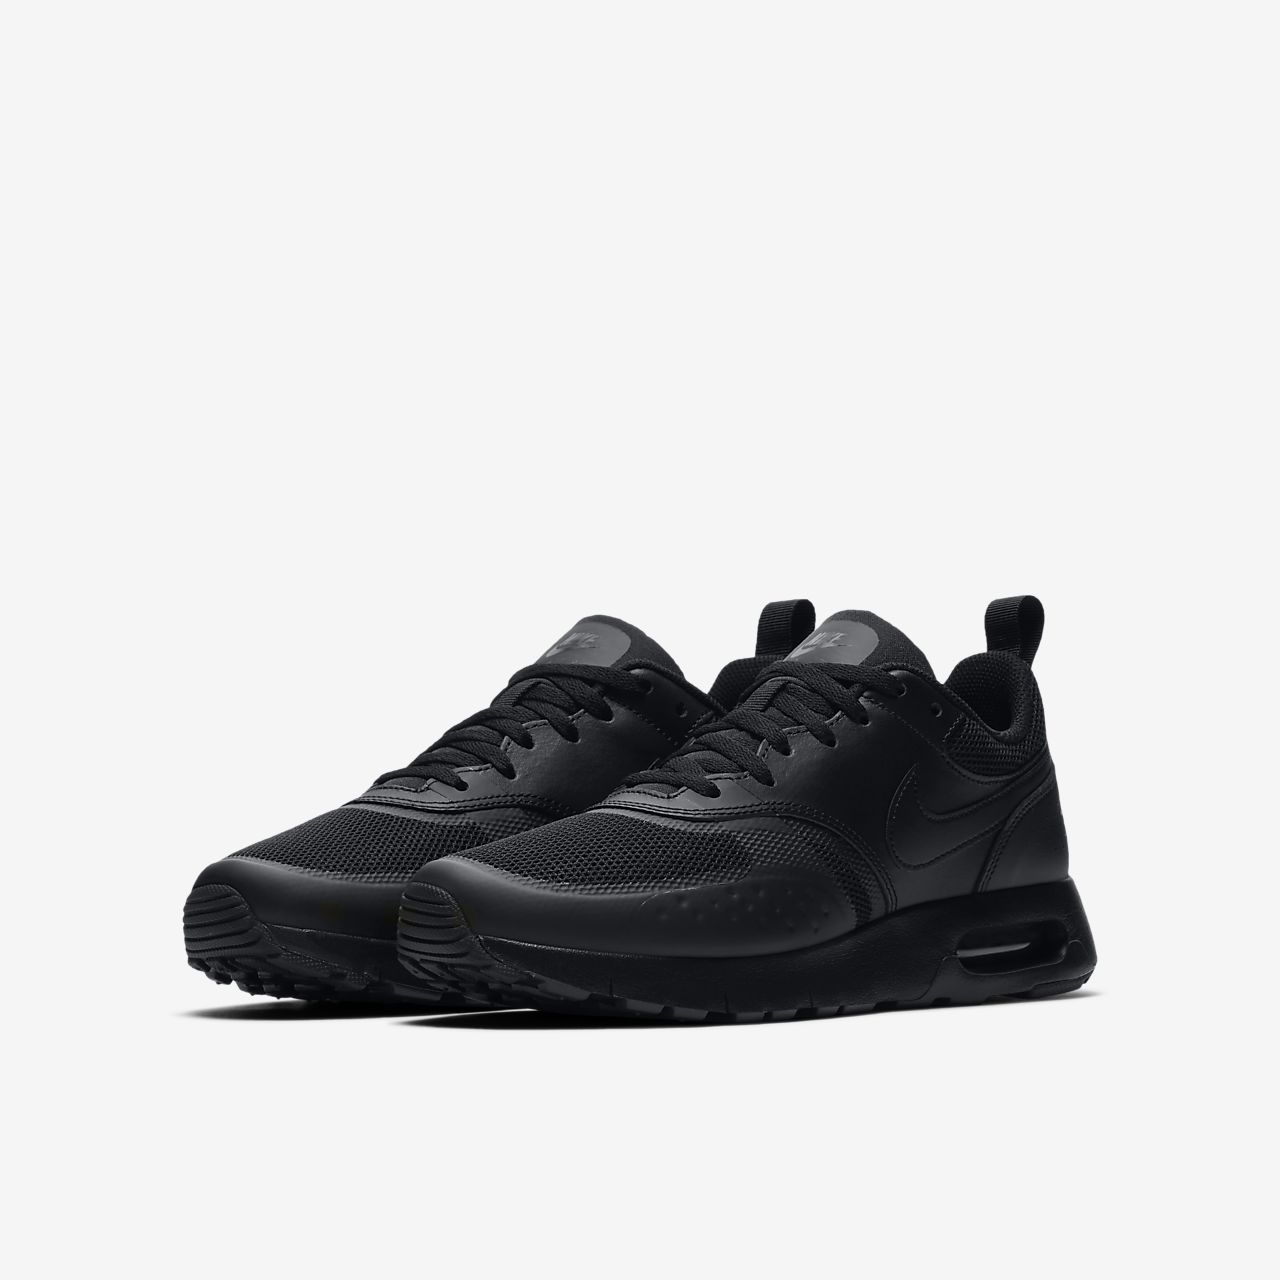 ... black sequoia cecc1 b51f0  cheapest nike air max vision older kids shoe  60539 6c200 35d855b42